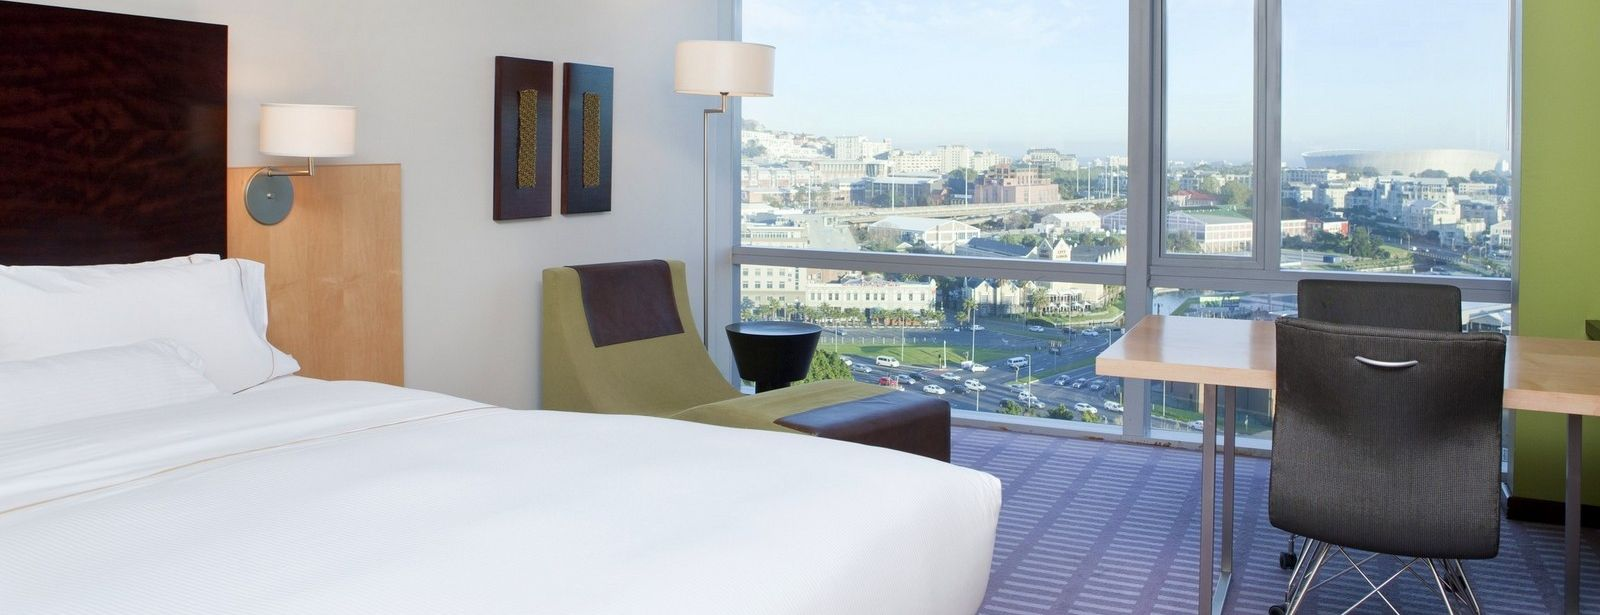 Westin Cape Town Deluxe Room with sea view of Cape Town Stadium